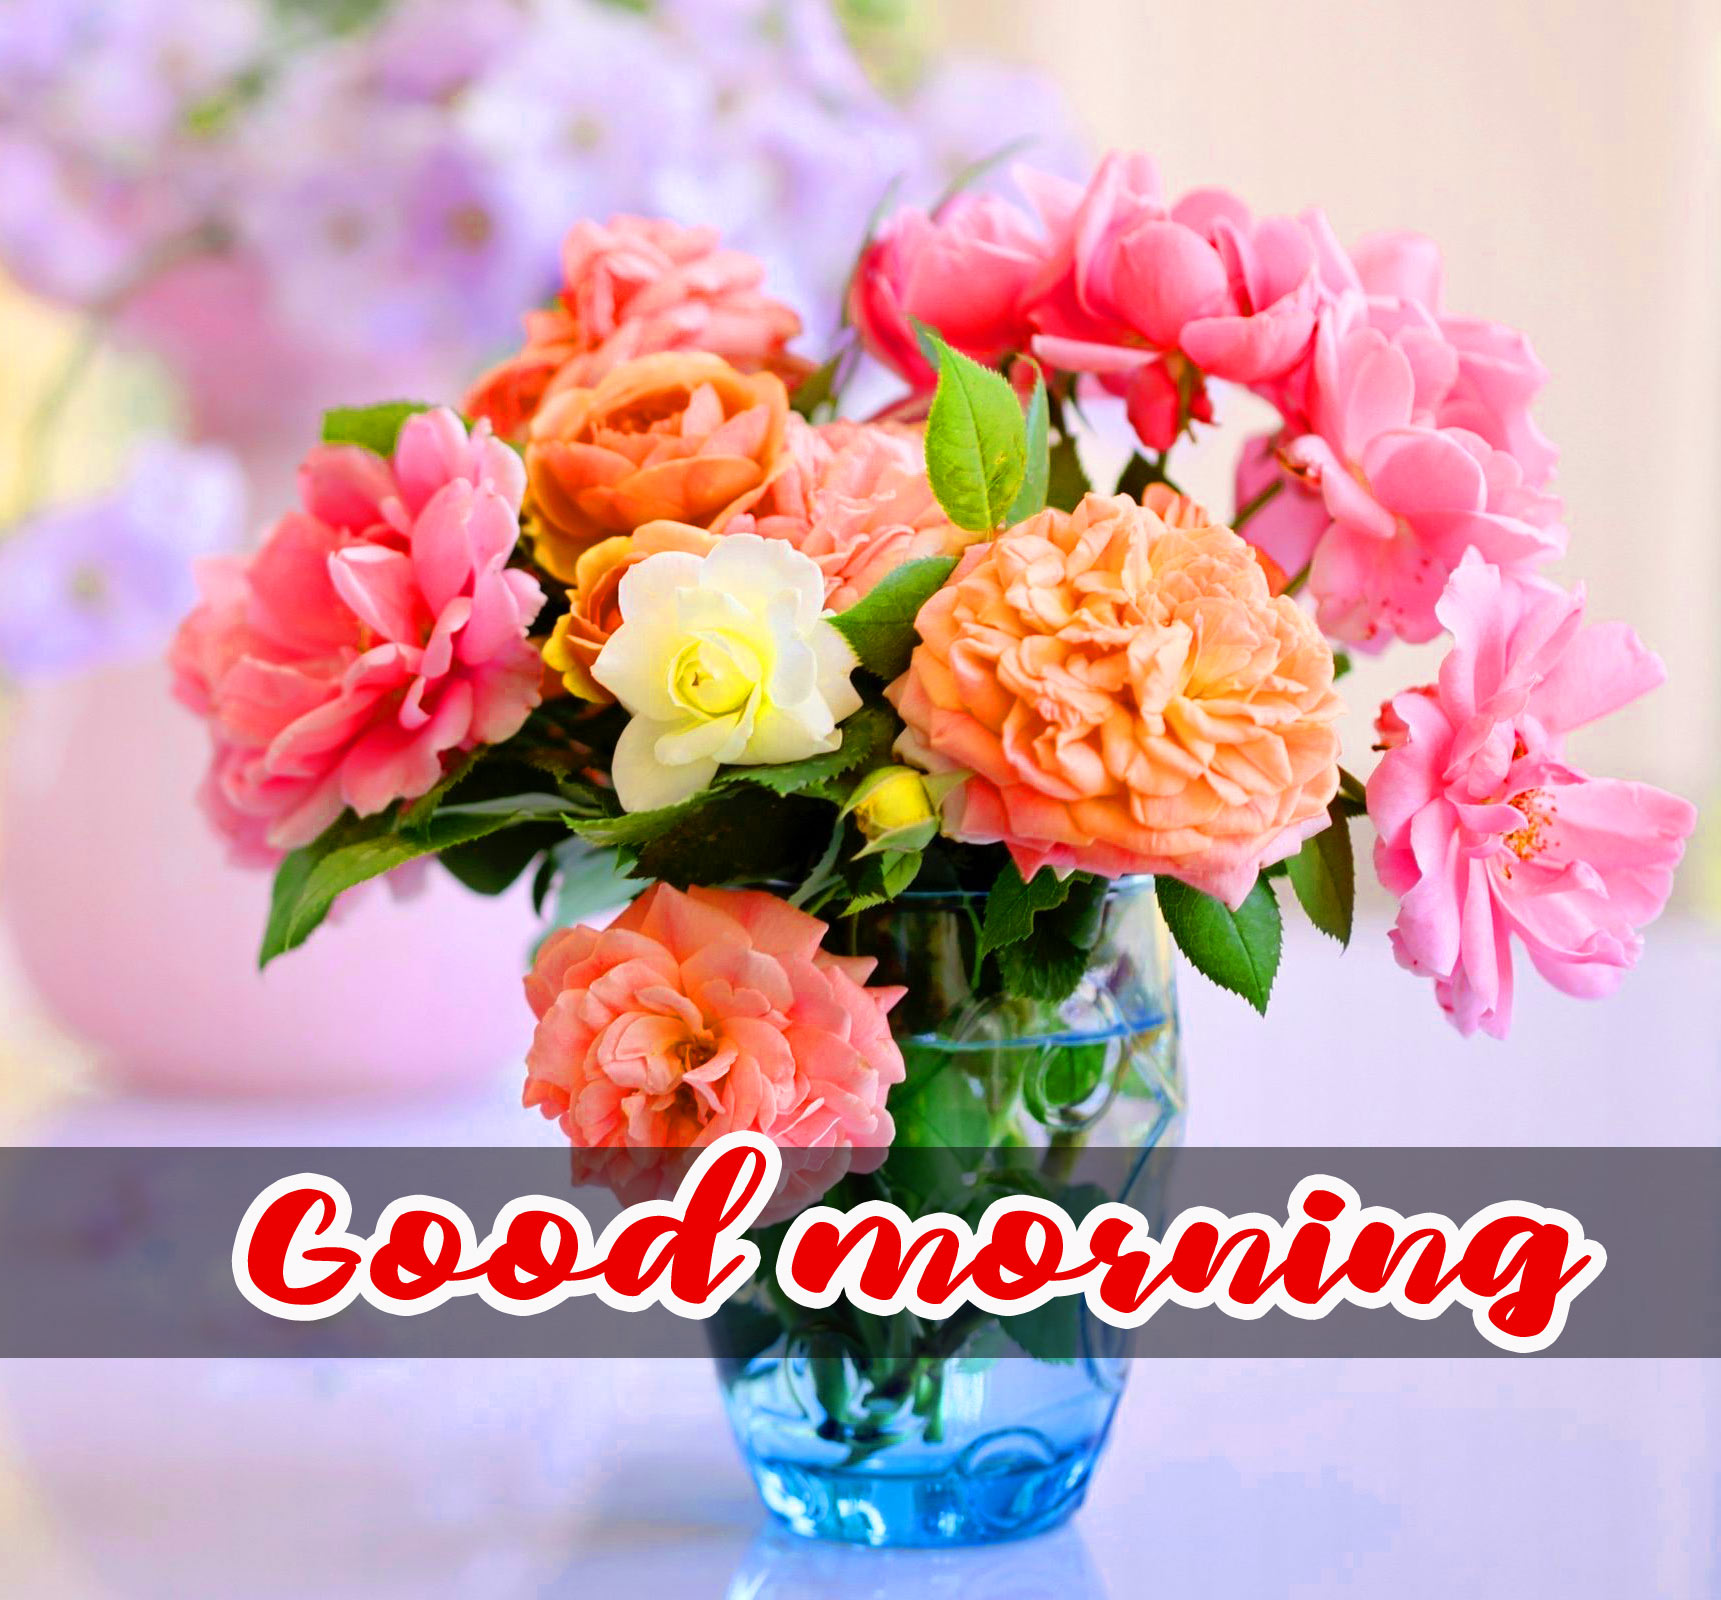 Flower good morning Pics Wallpaper Free